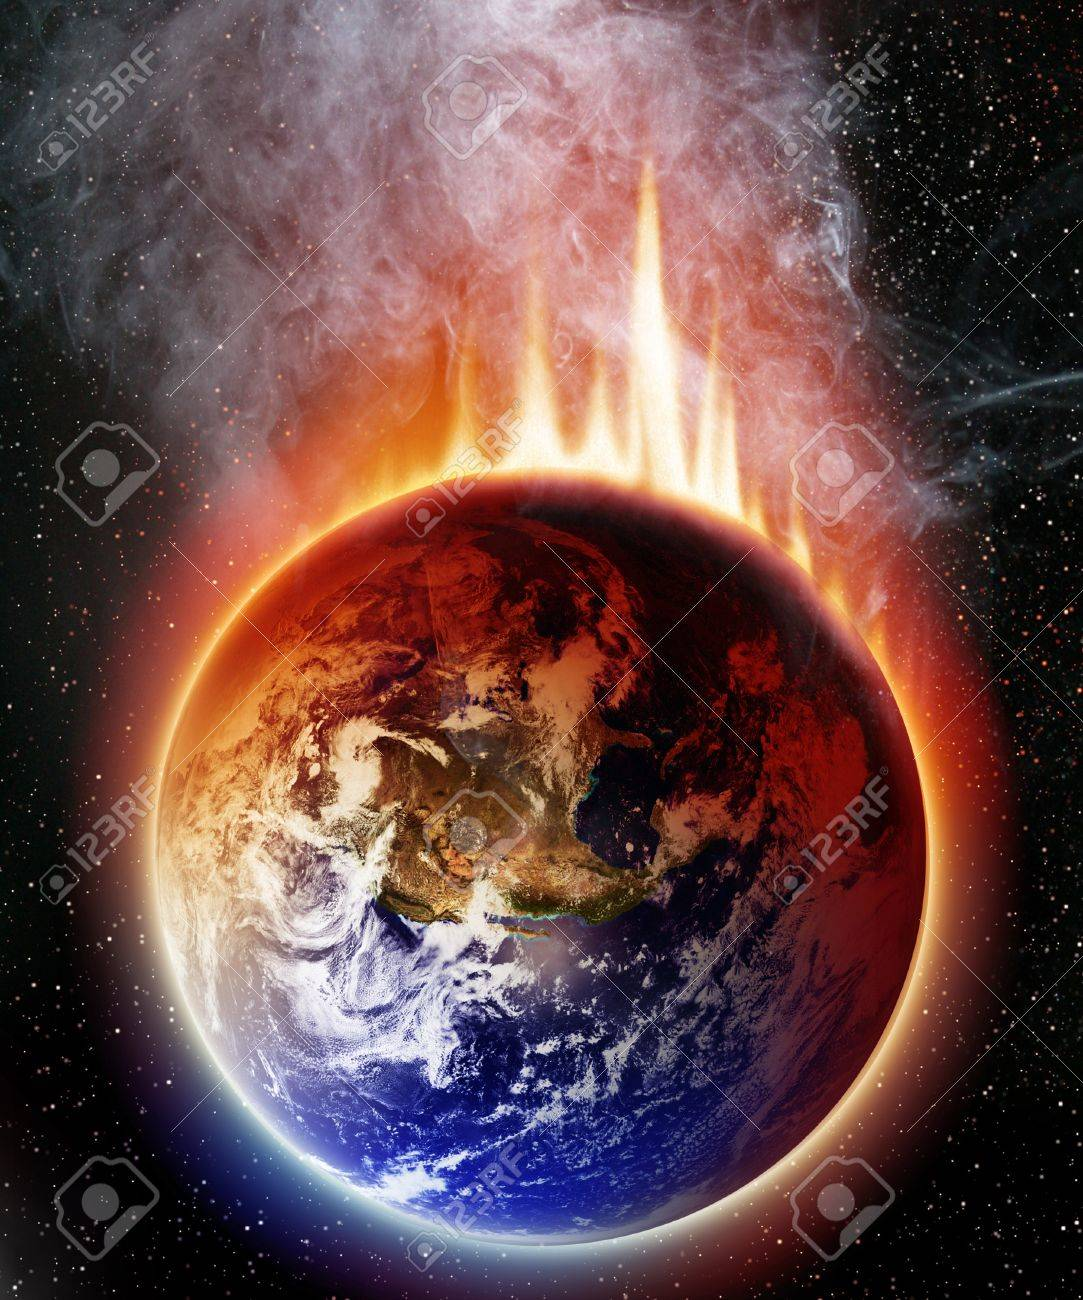 Apocalyptic view of planet earth on a dark space background Stock Photo - 14670163